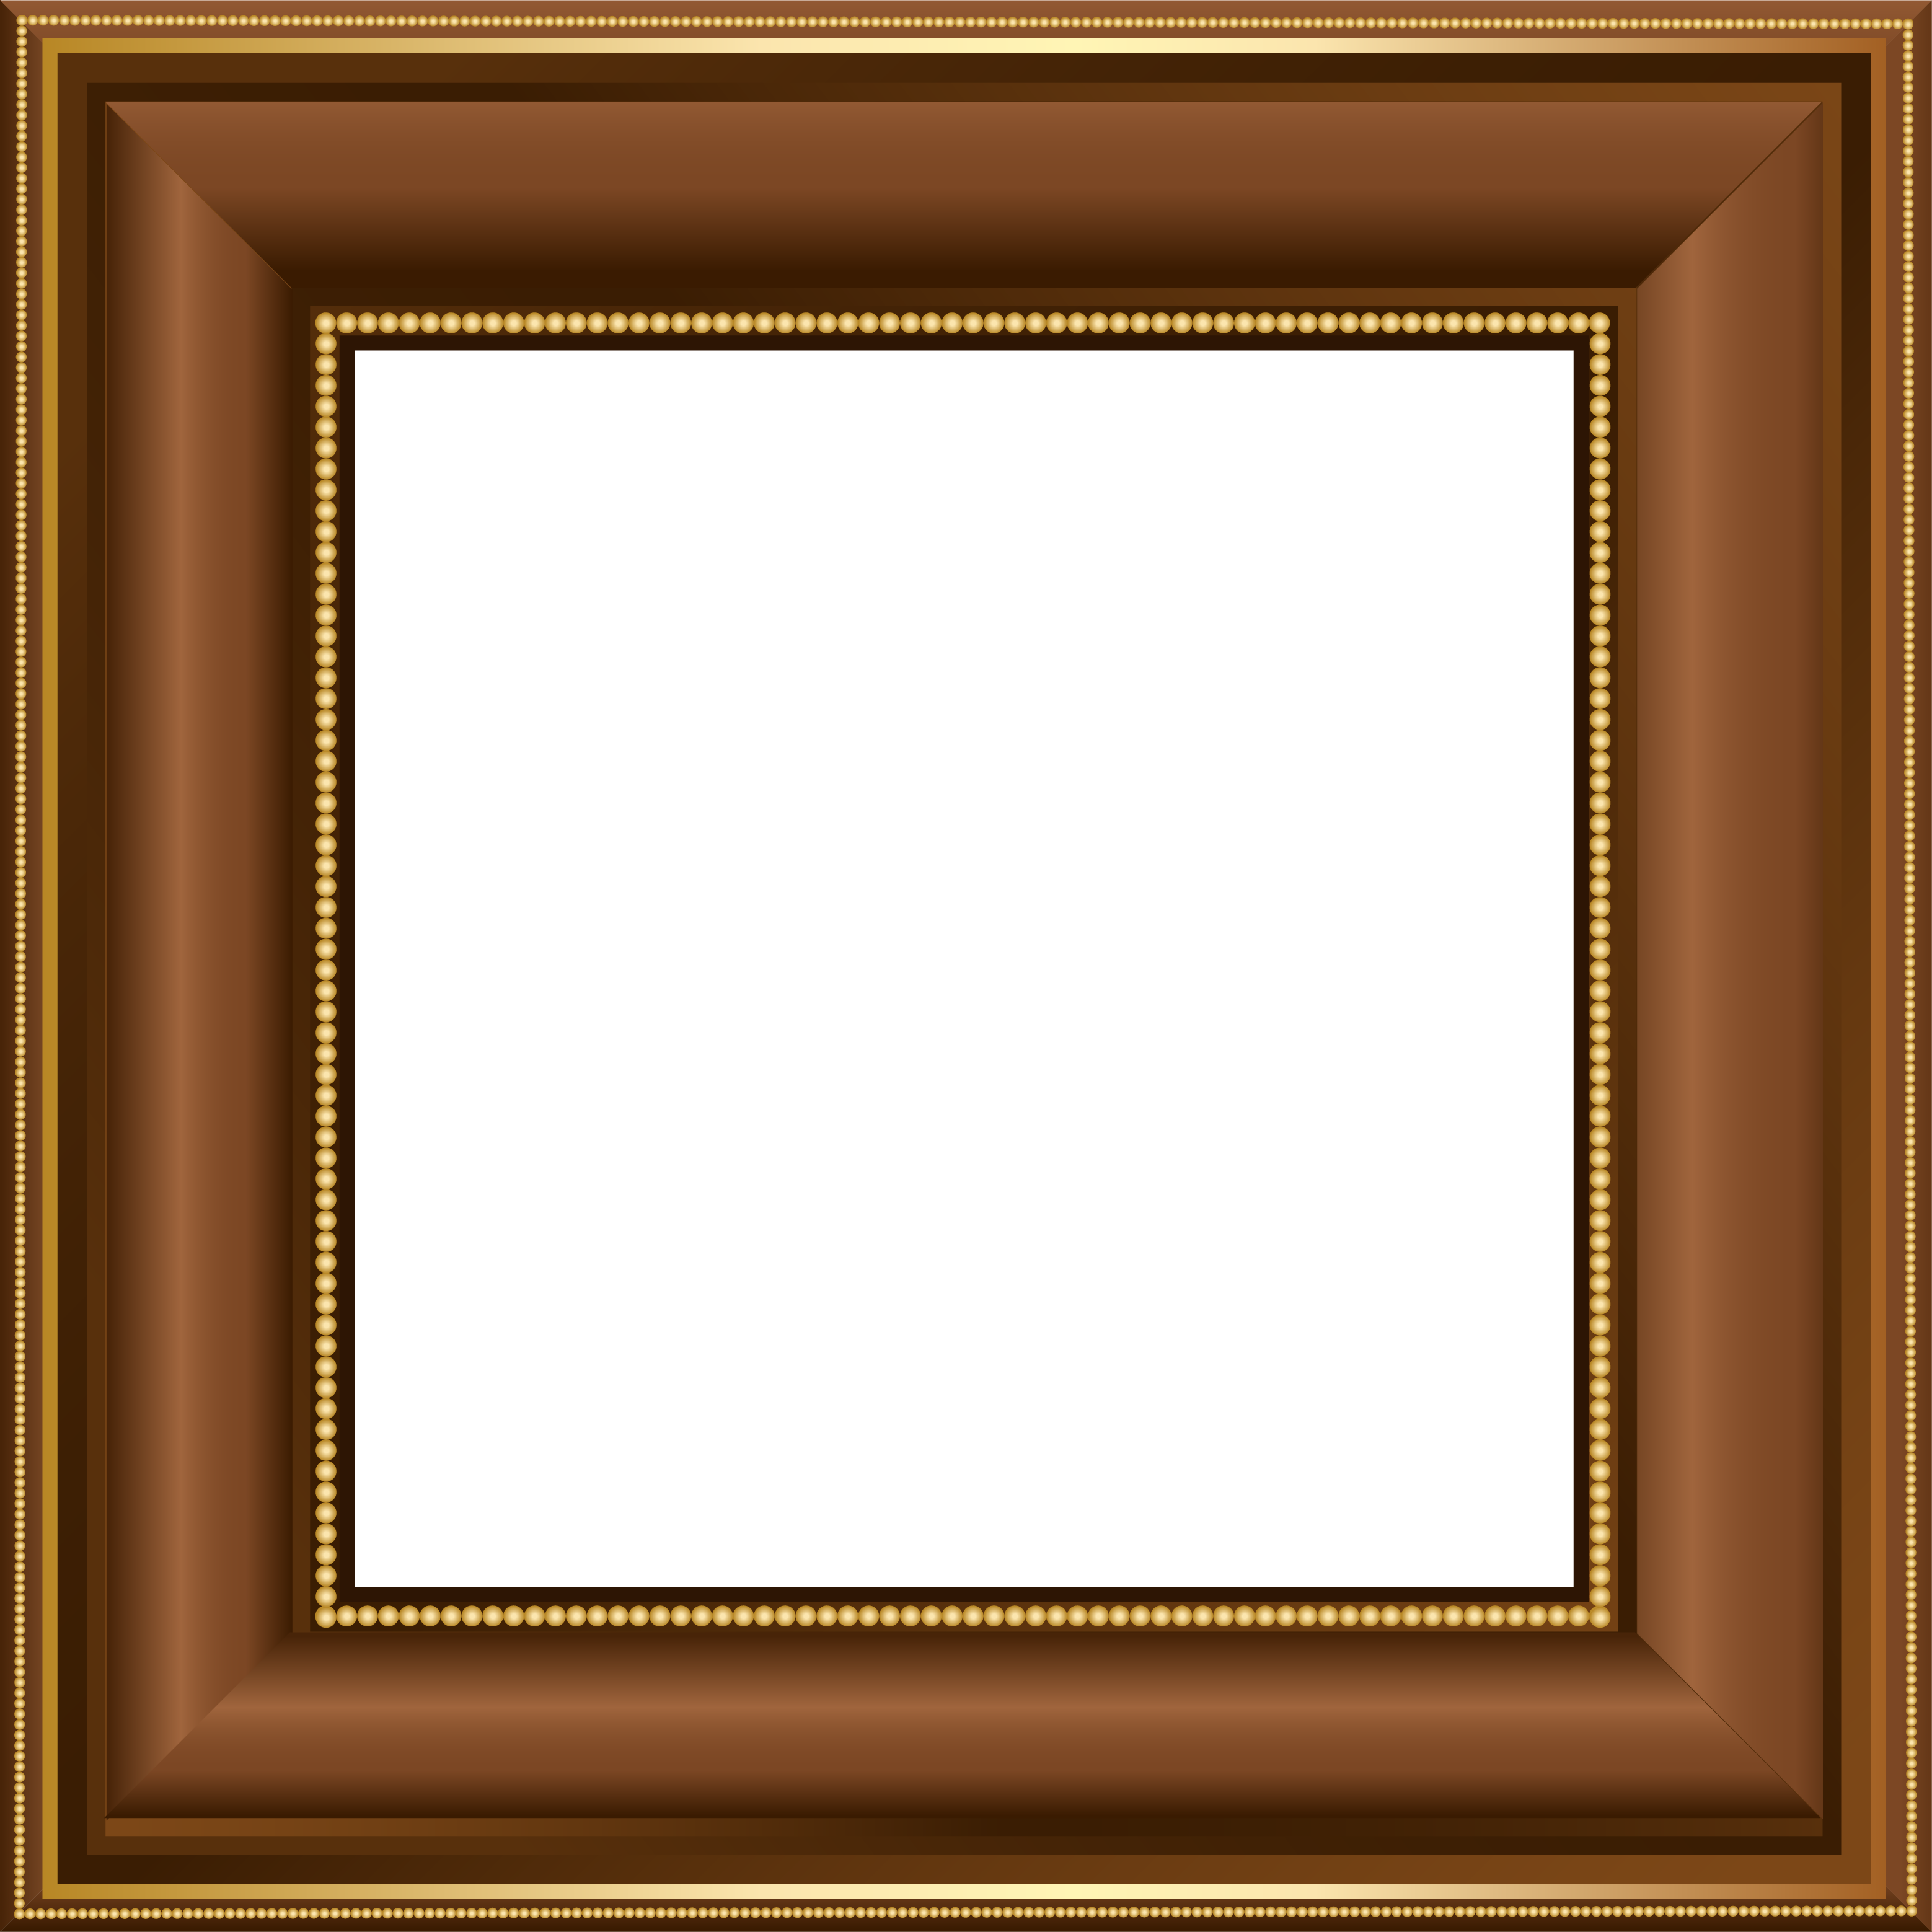 Brown transparent photo yopriceville. Clipart gallery photograph frame